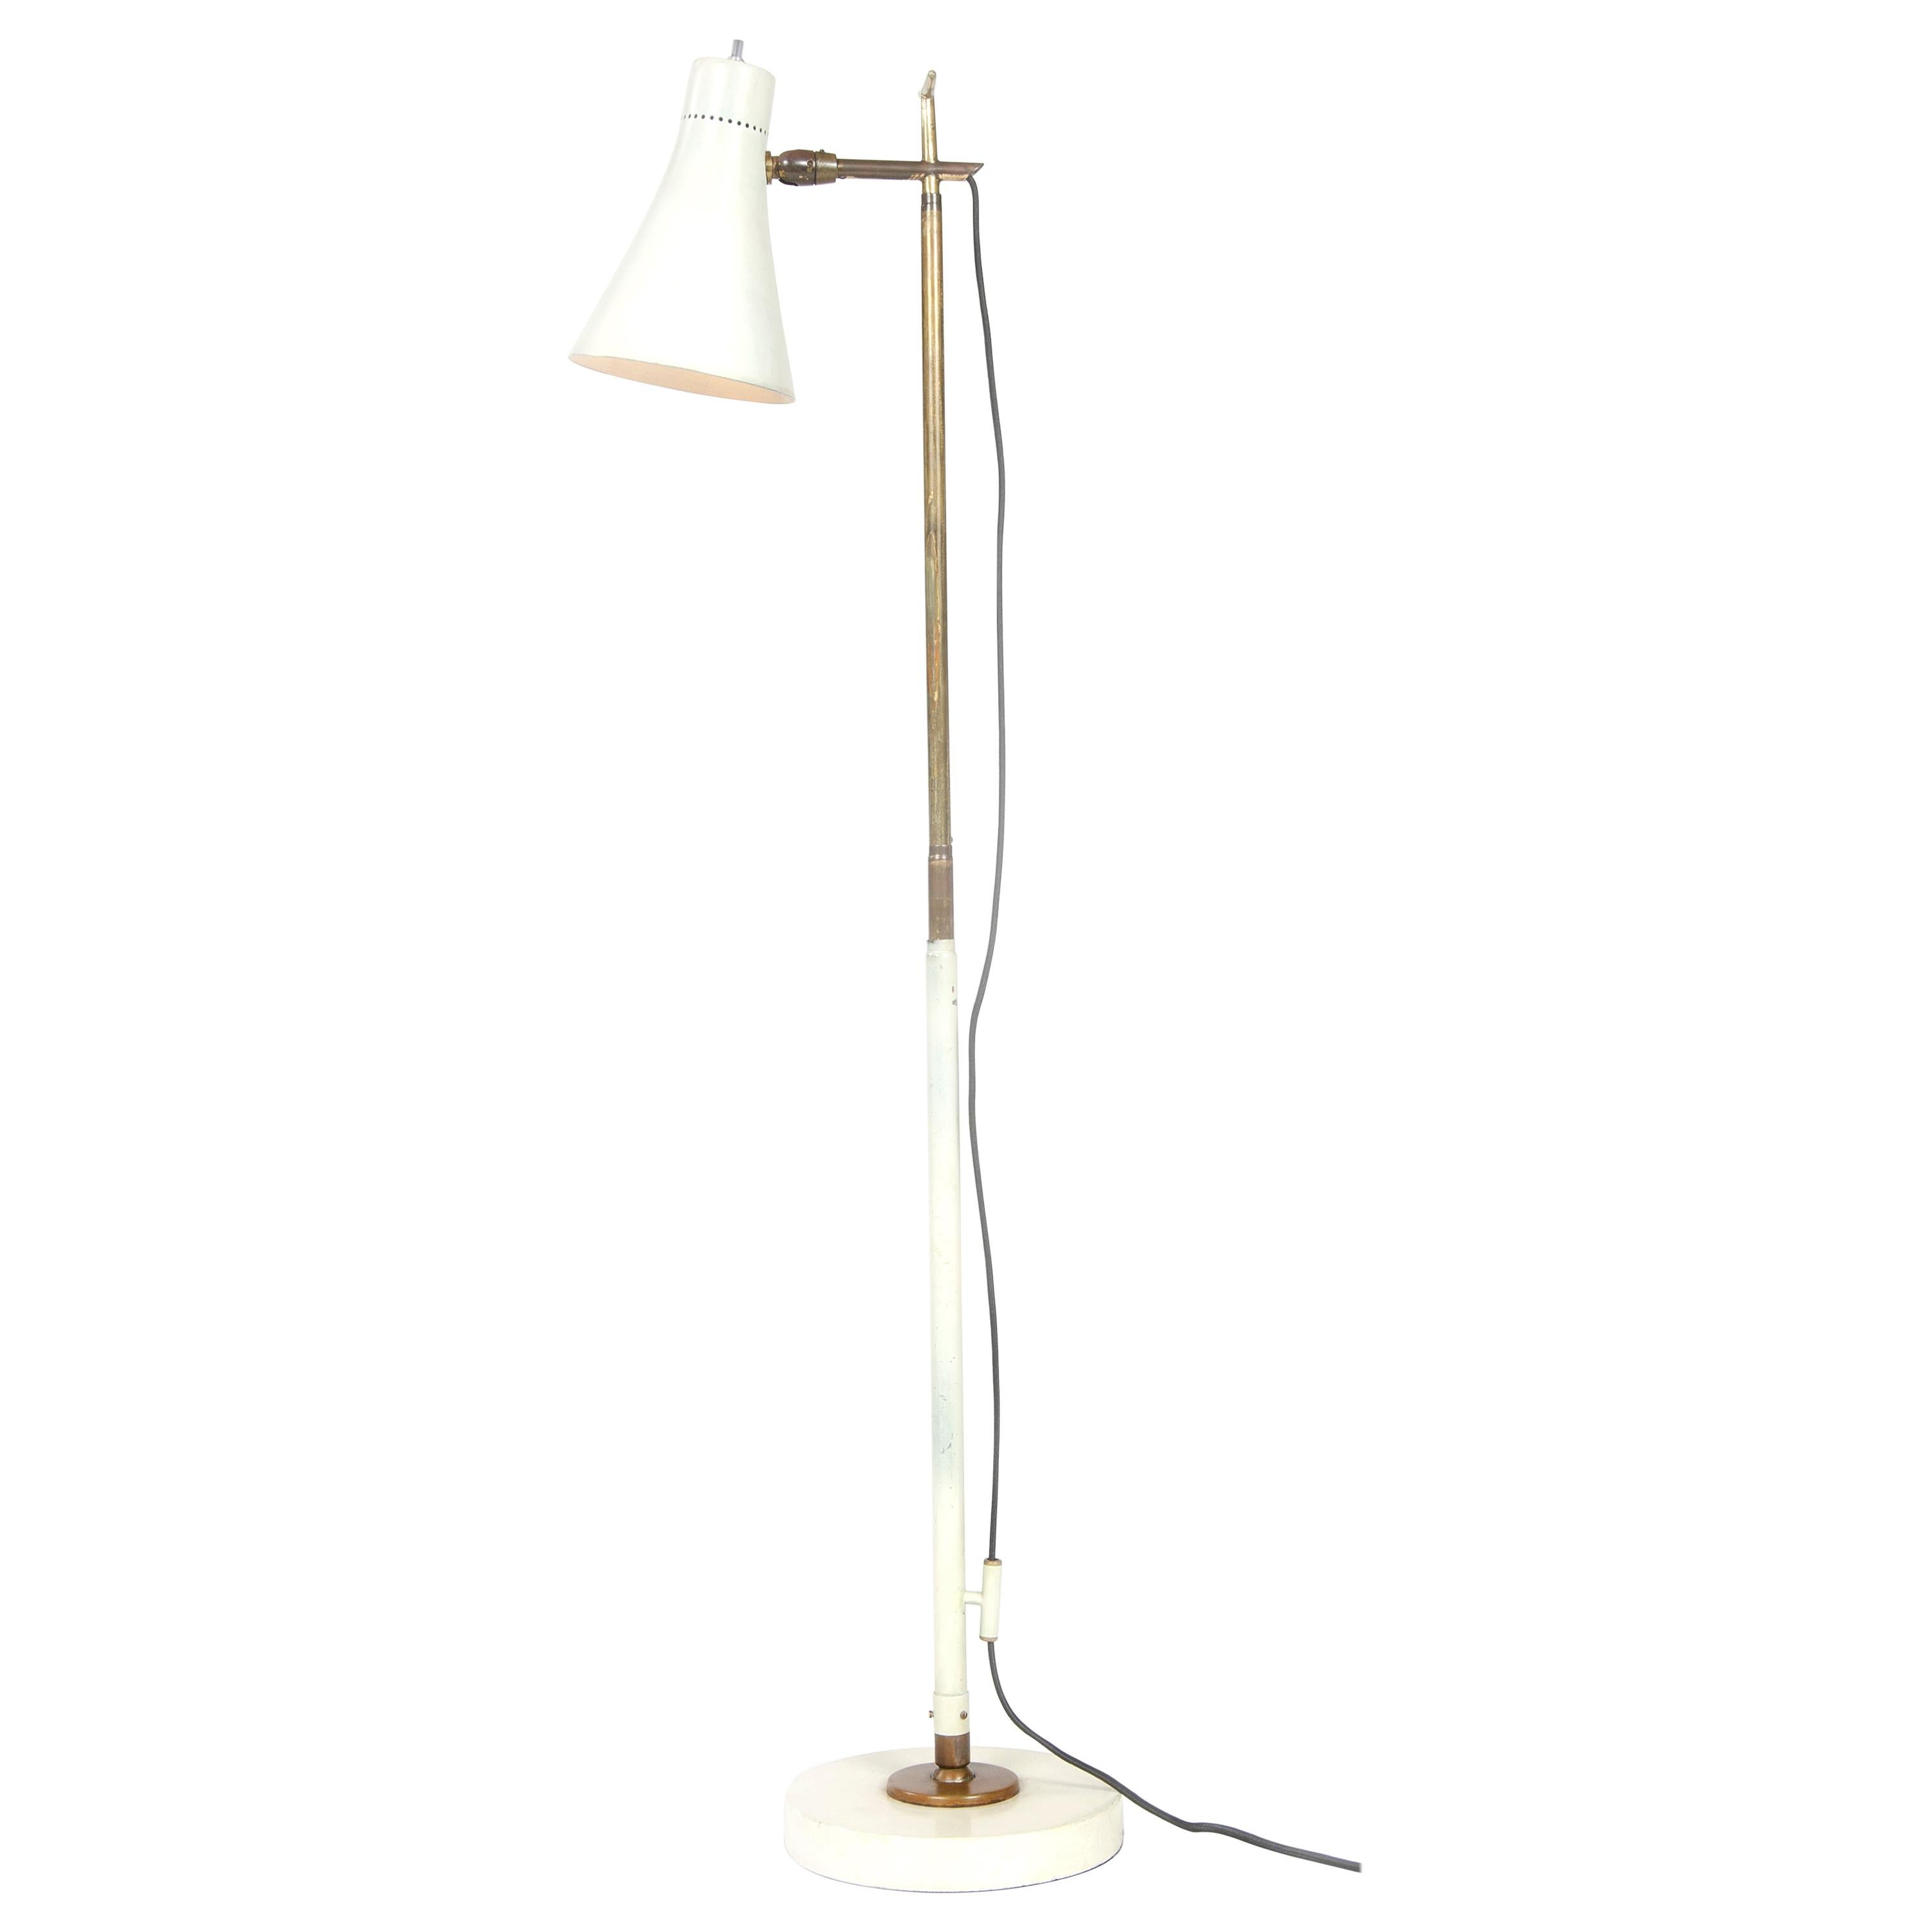 1950s Italian Telescoping Floor or Desk Lamp by Giuseppe Ostuni for O-Luce